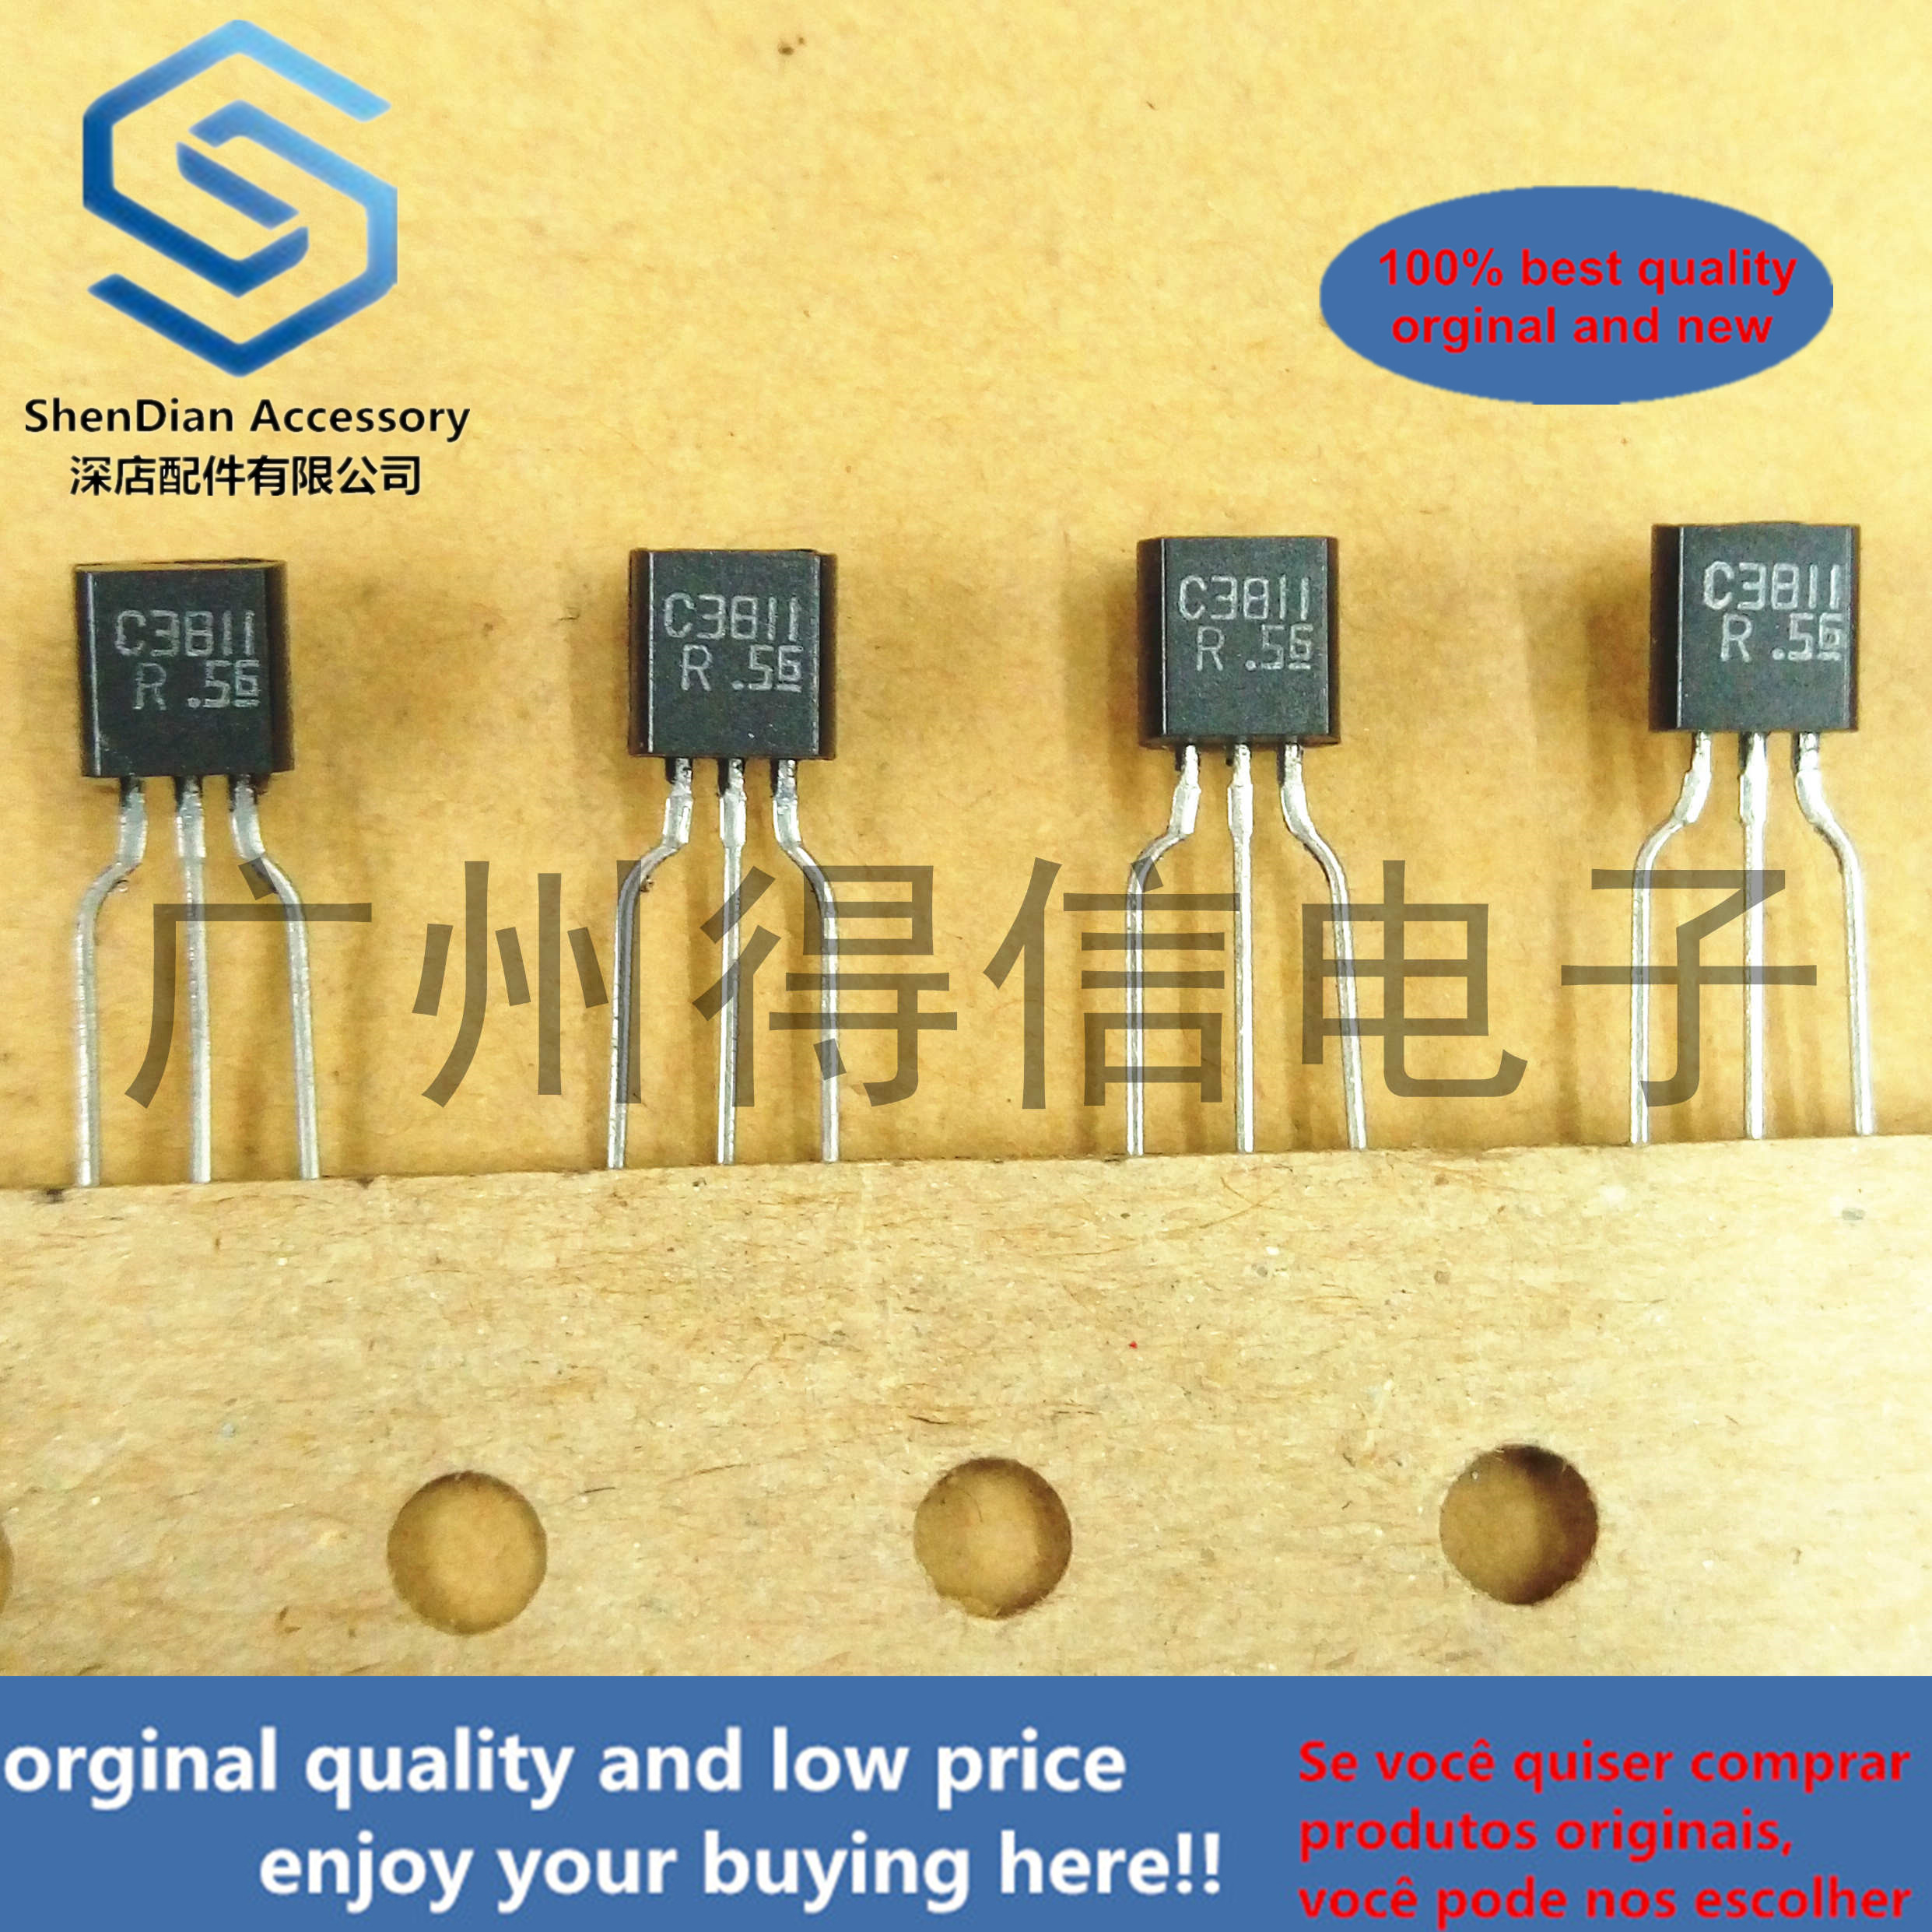 10pcs 100% New And Orginal 2SC3811R C3811 40V0.3A TO-92 Silicon NPN Epitaxial Planer Type(For High Speed Switching)  In Stock